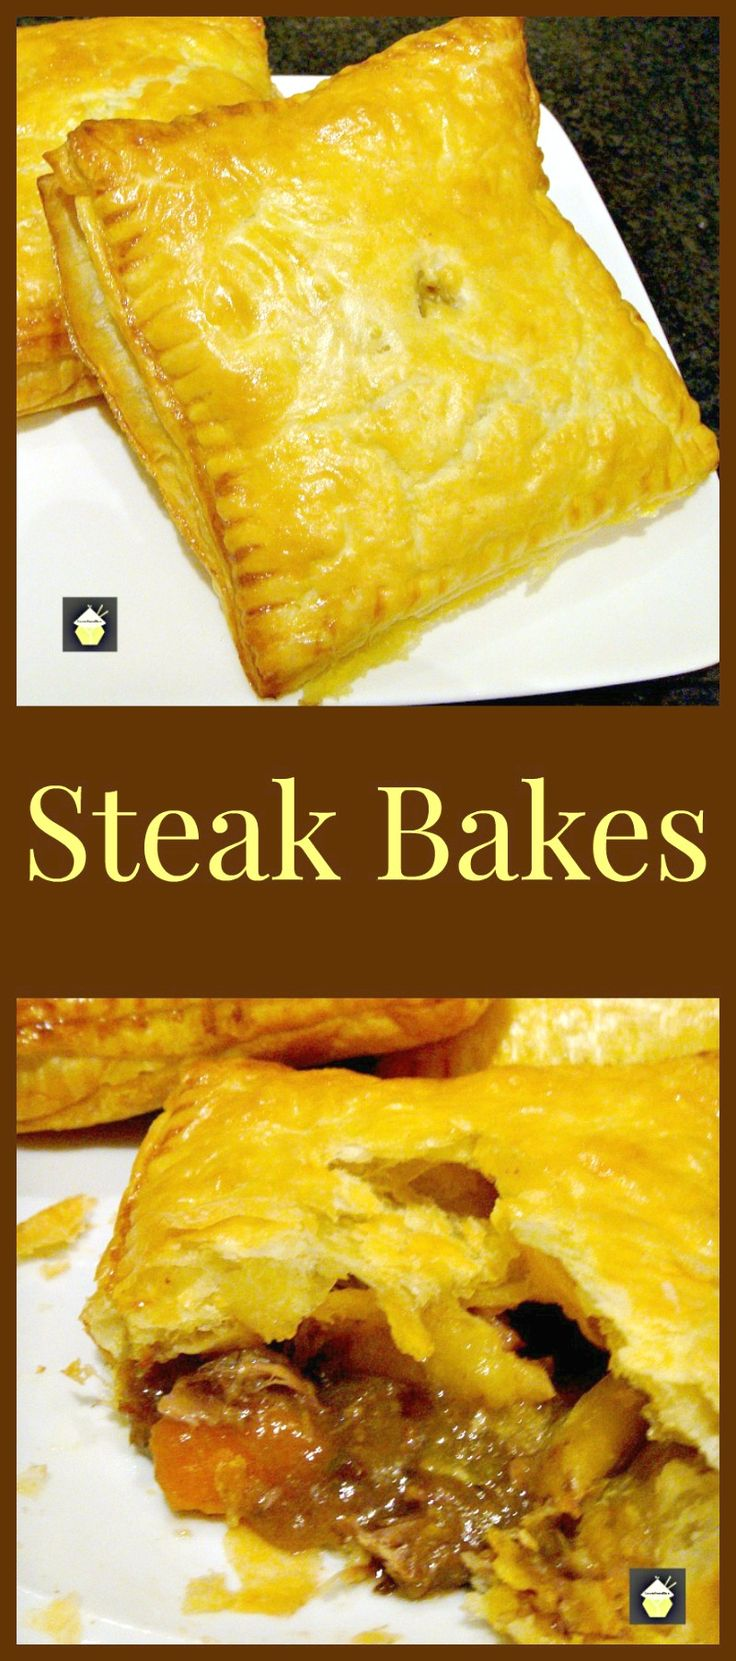 Steak Bakes (like Savory hand pies!). Delicious mini puff pastry pies using leftover fillings from your pot roasts, casseroles and roast dinners! Really easy to make and great for lunches or as part of a dinner.